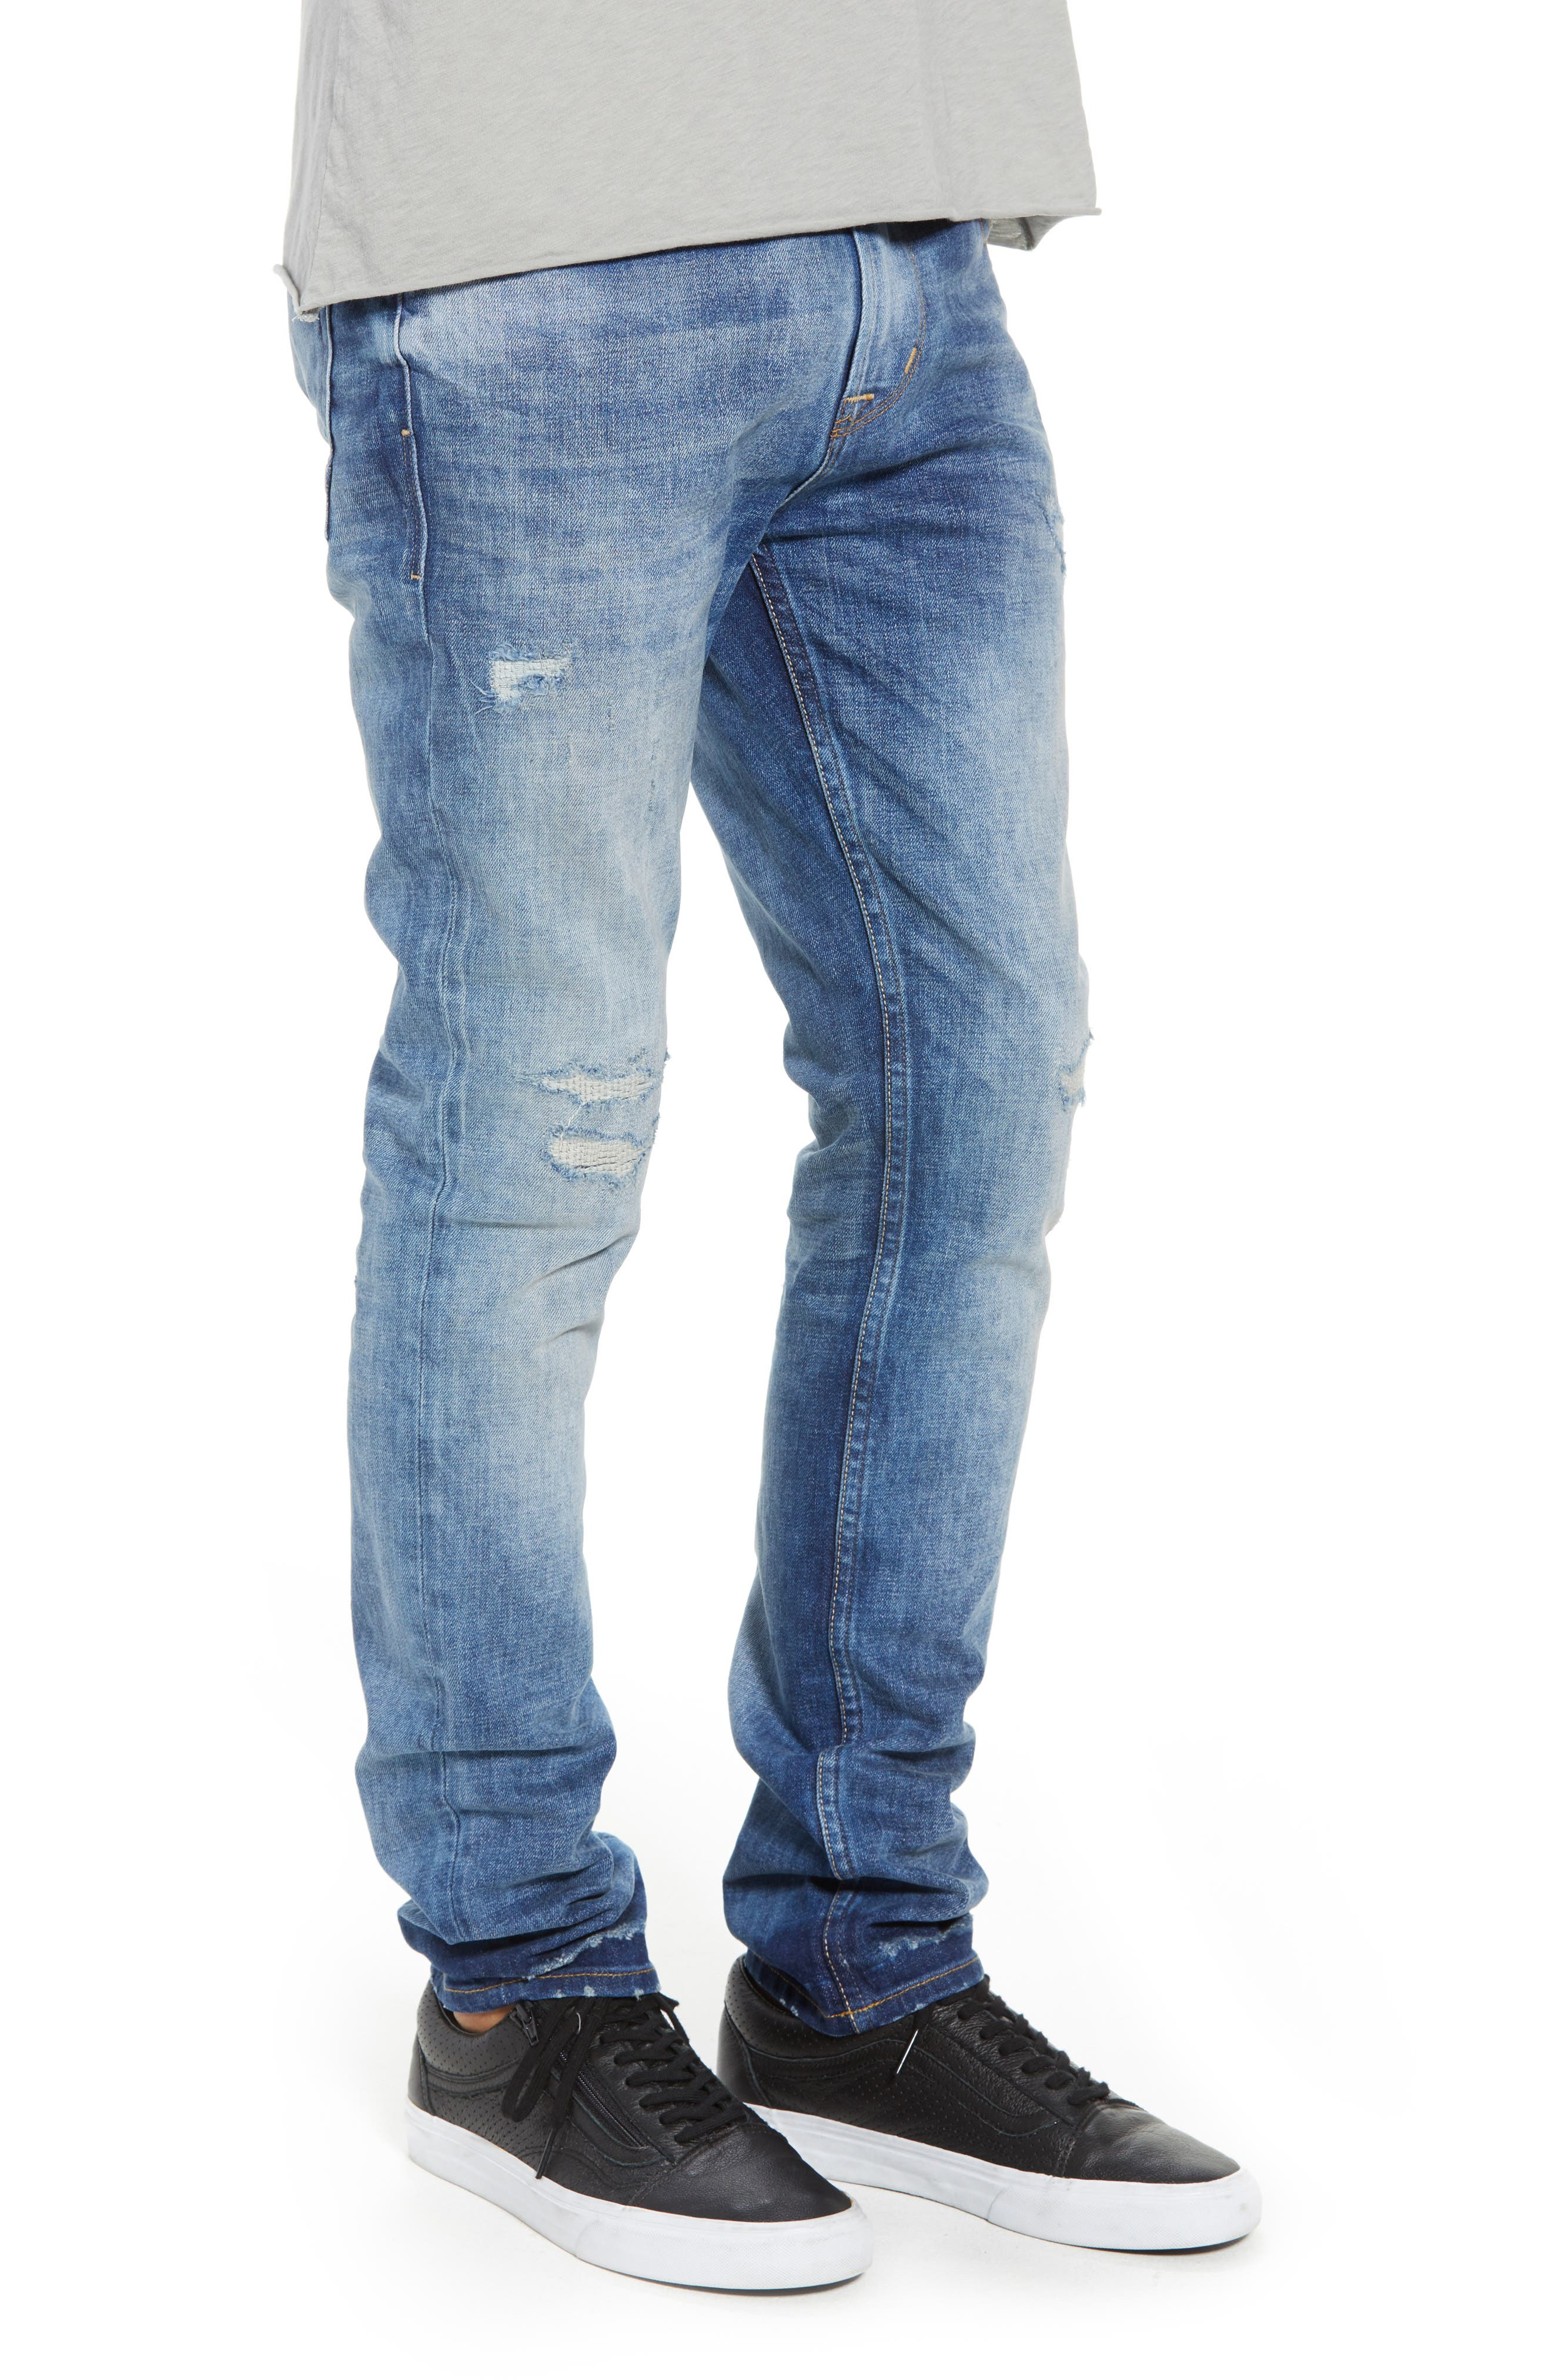 Axl Skinny Fit Jeans,                             Alternate thumbnail 3, color,                             RIDE OUT